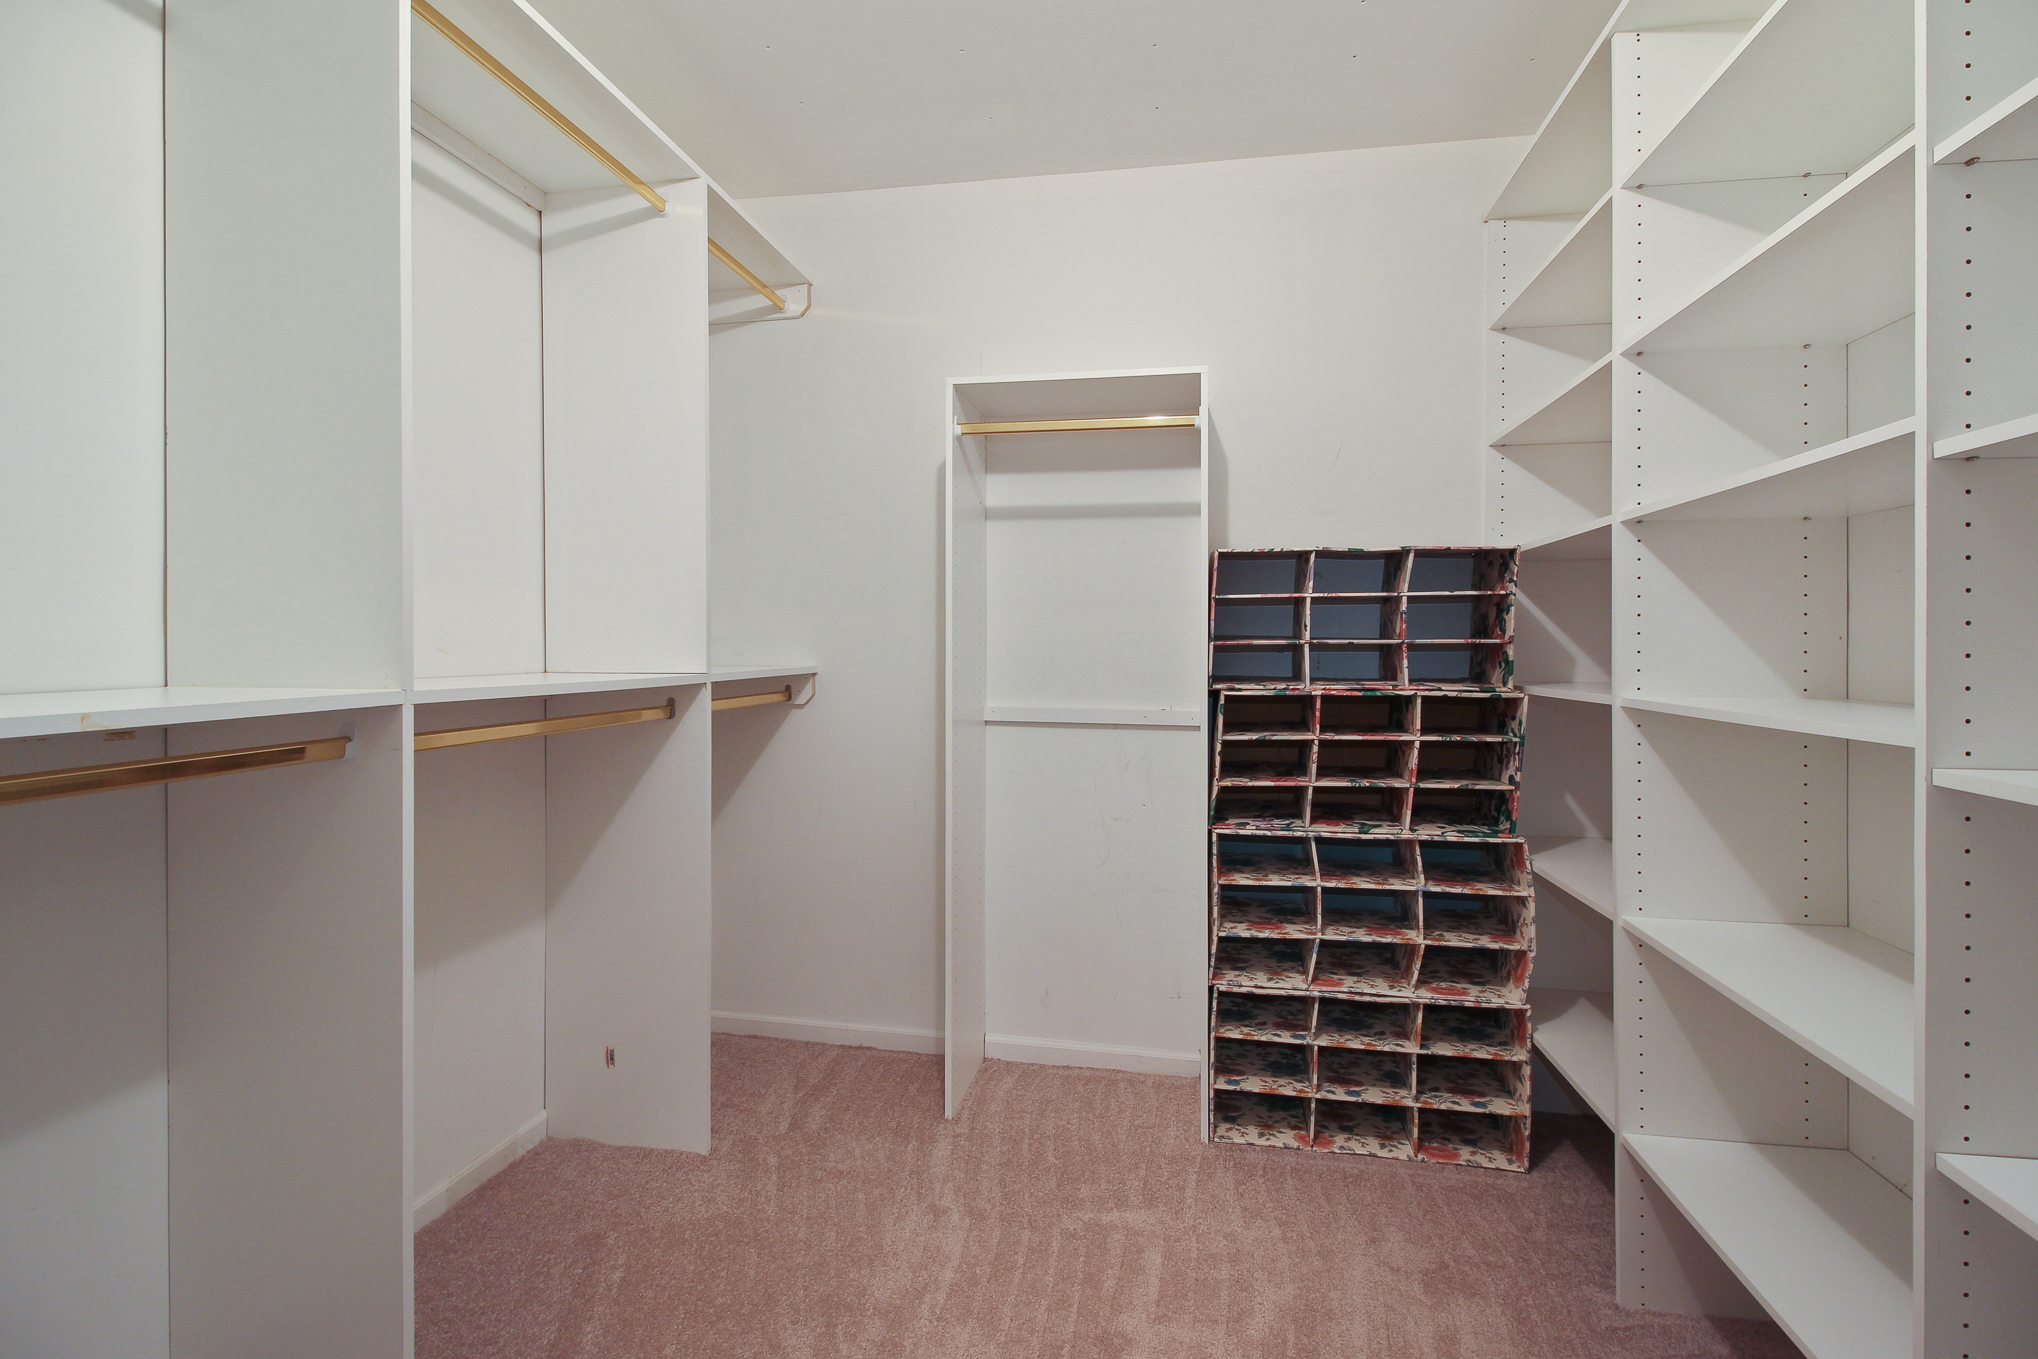 Second Level Dry Goods Storage